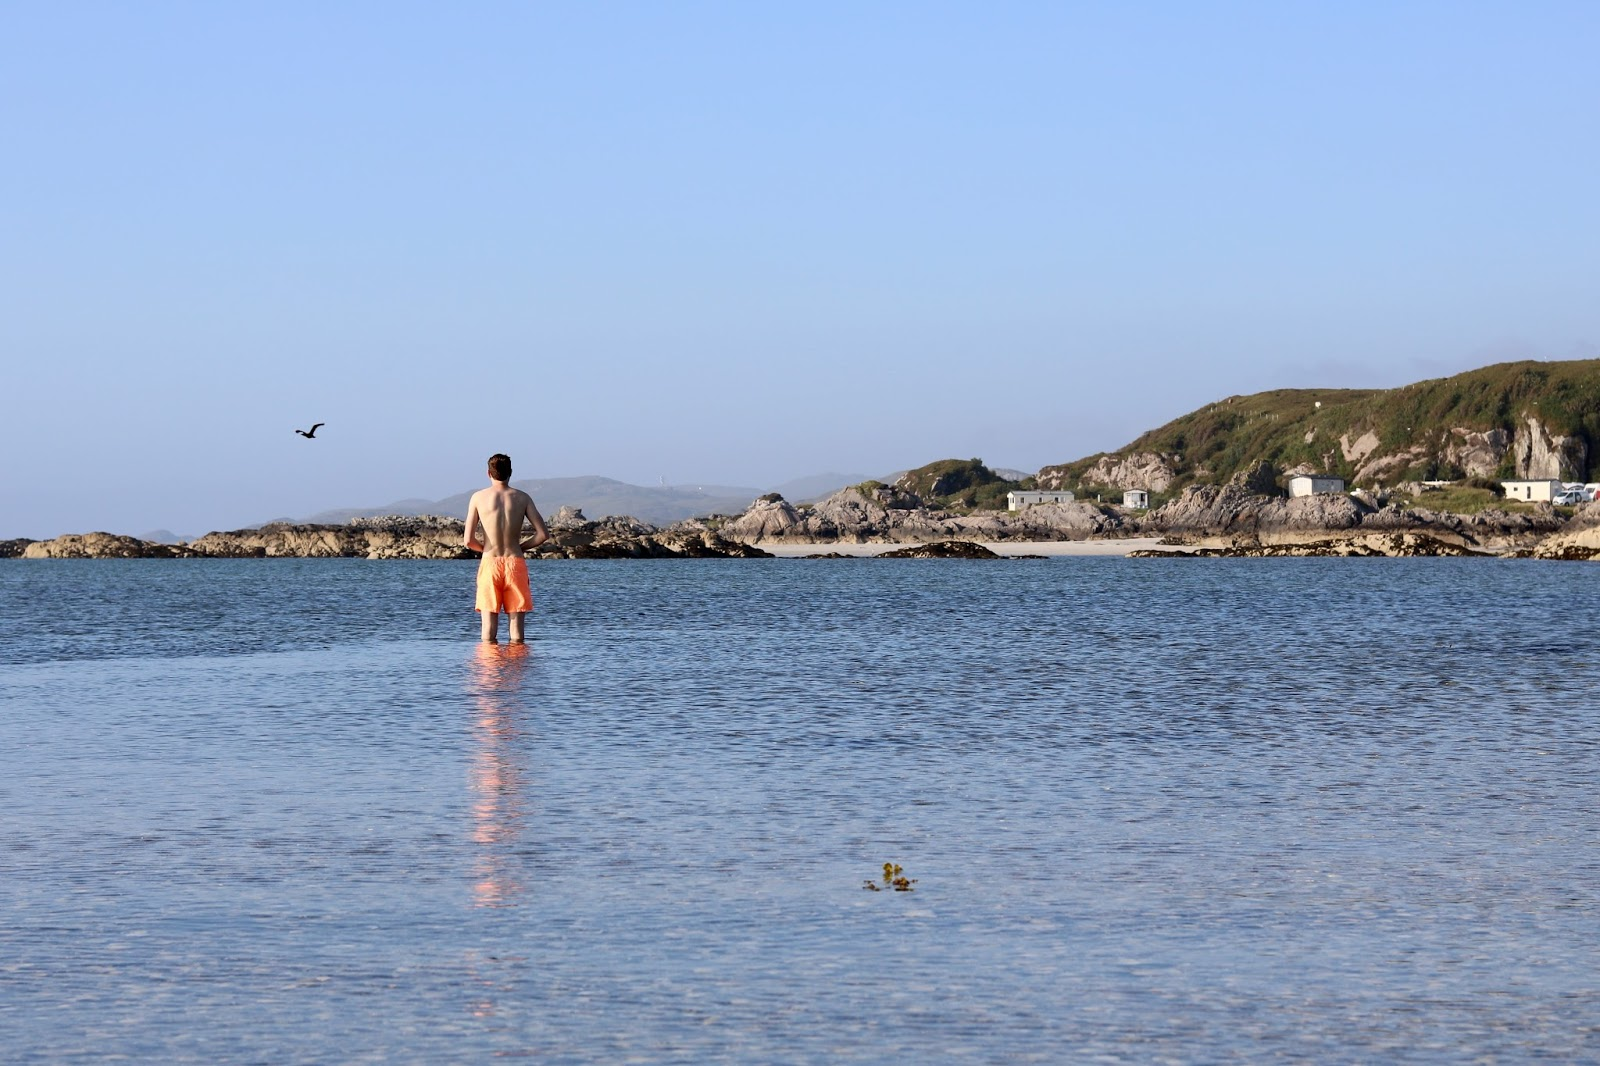 Cal Mc enjoying a dip in the sea in Arisaig